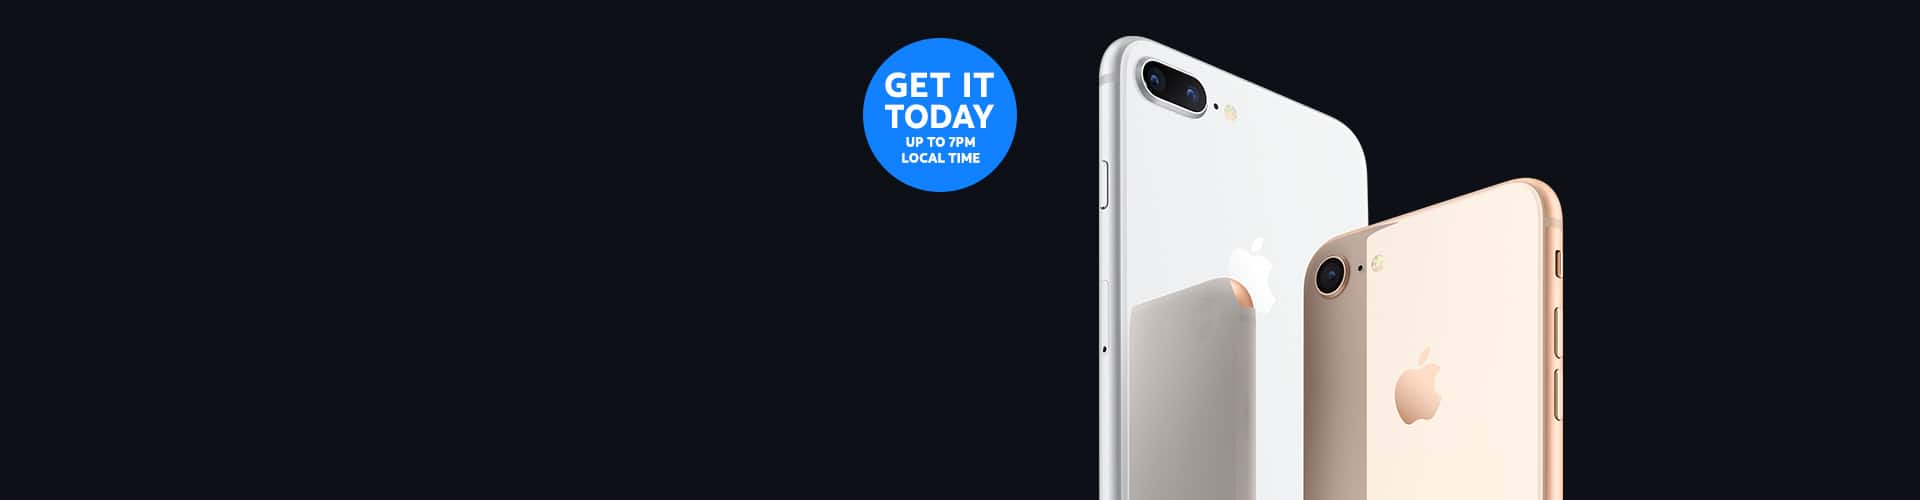 50% off iPhone-8